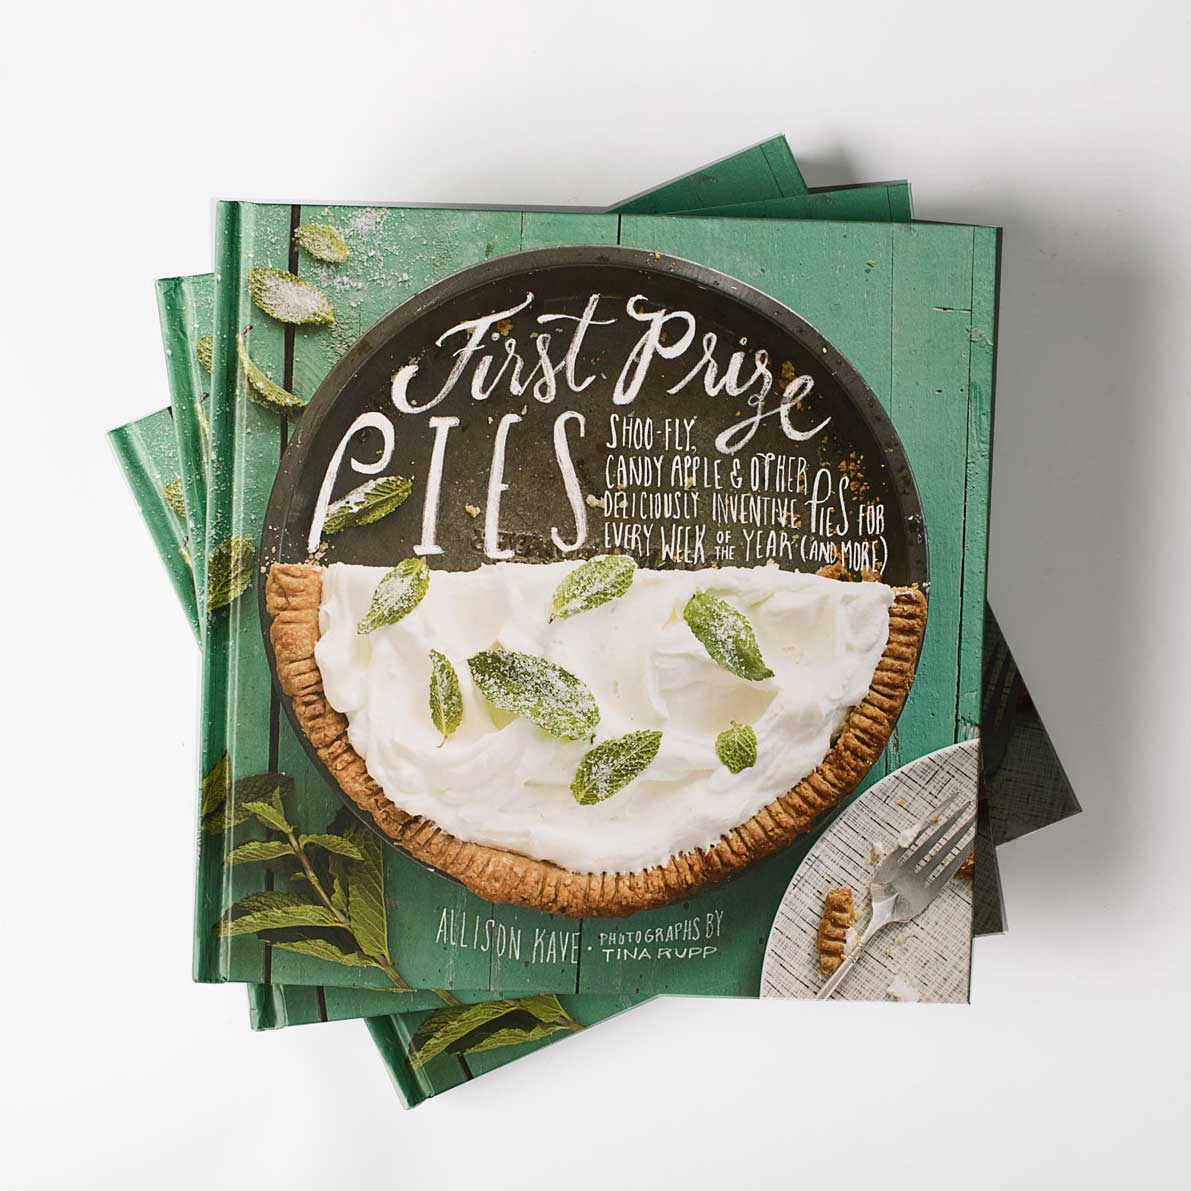 Signed First Prize Pies Cookbook